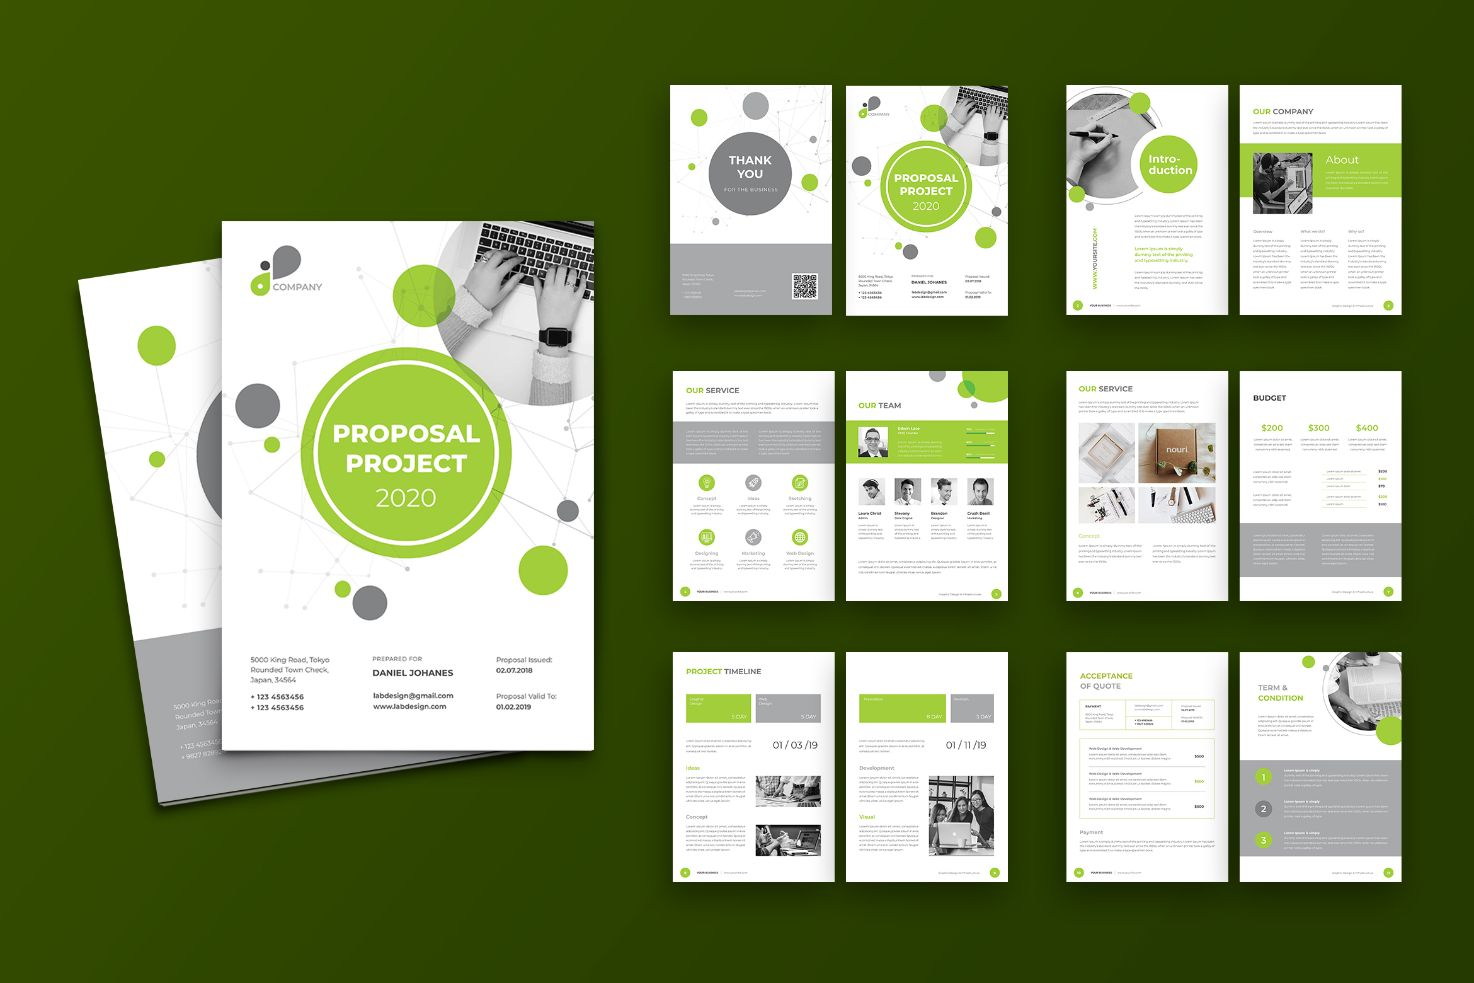 Proposal Professional Designing Corporate Identity Template